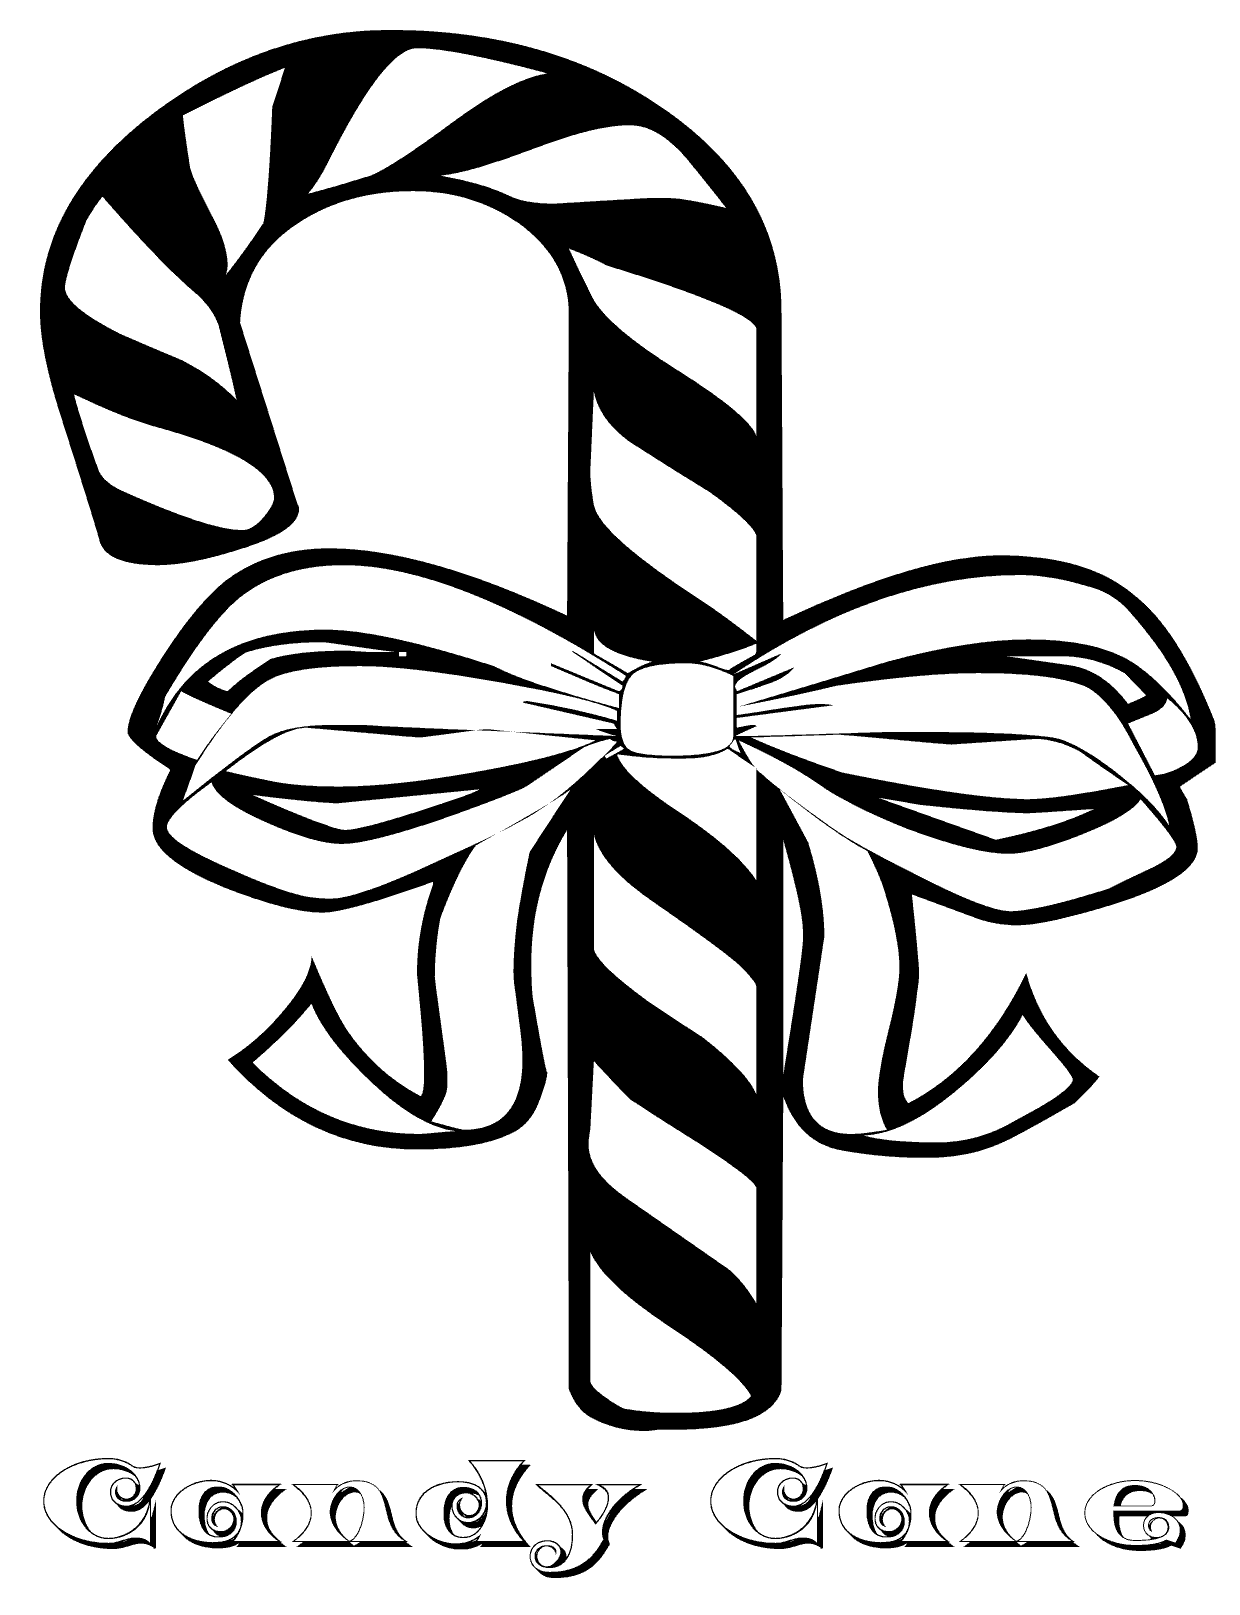 Coloring pages candy - Candy Cane Coloring Pages Photos